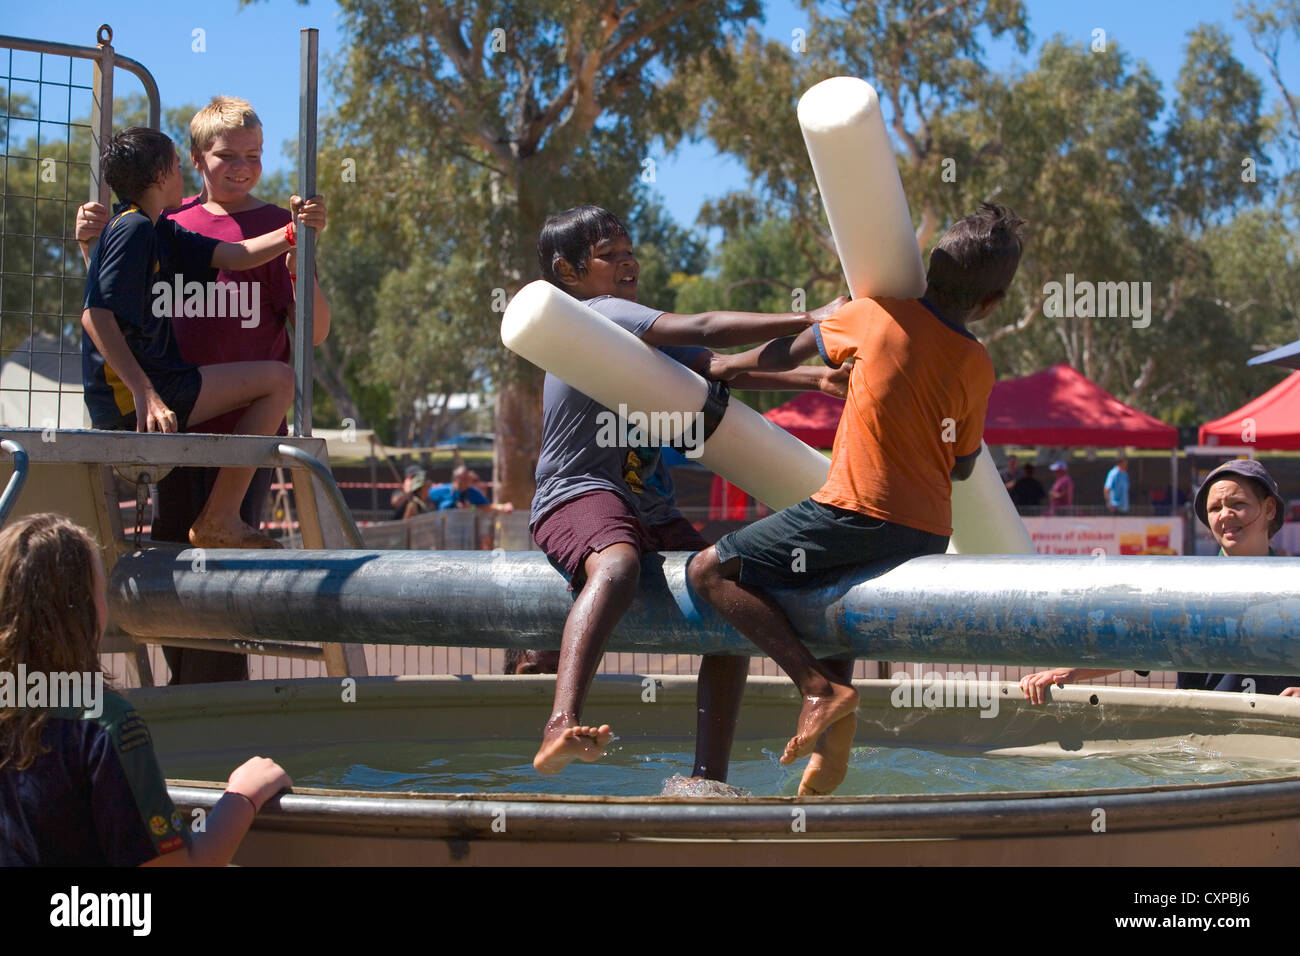 Aboriginal children play in a pool at the 2010 Henley-on-Todd Regatta in Alice Springs, Australia - Stock Image